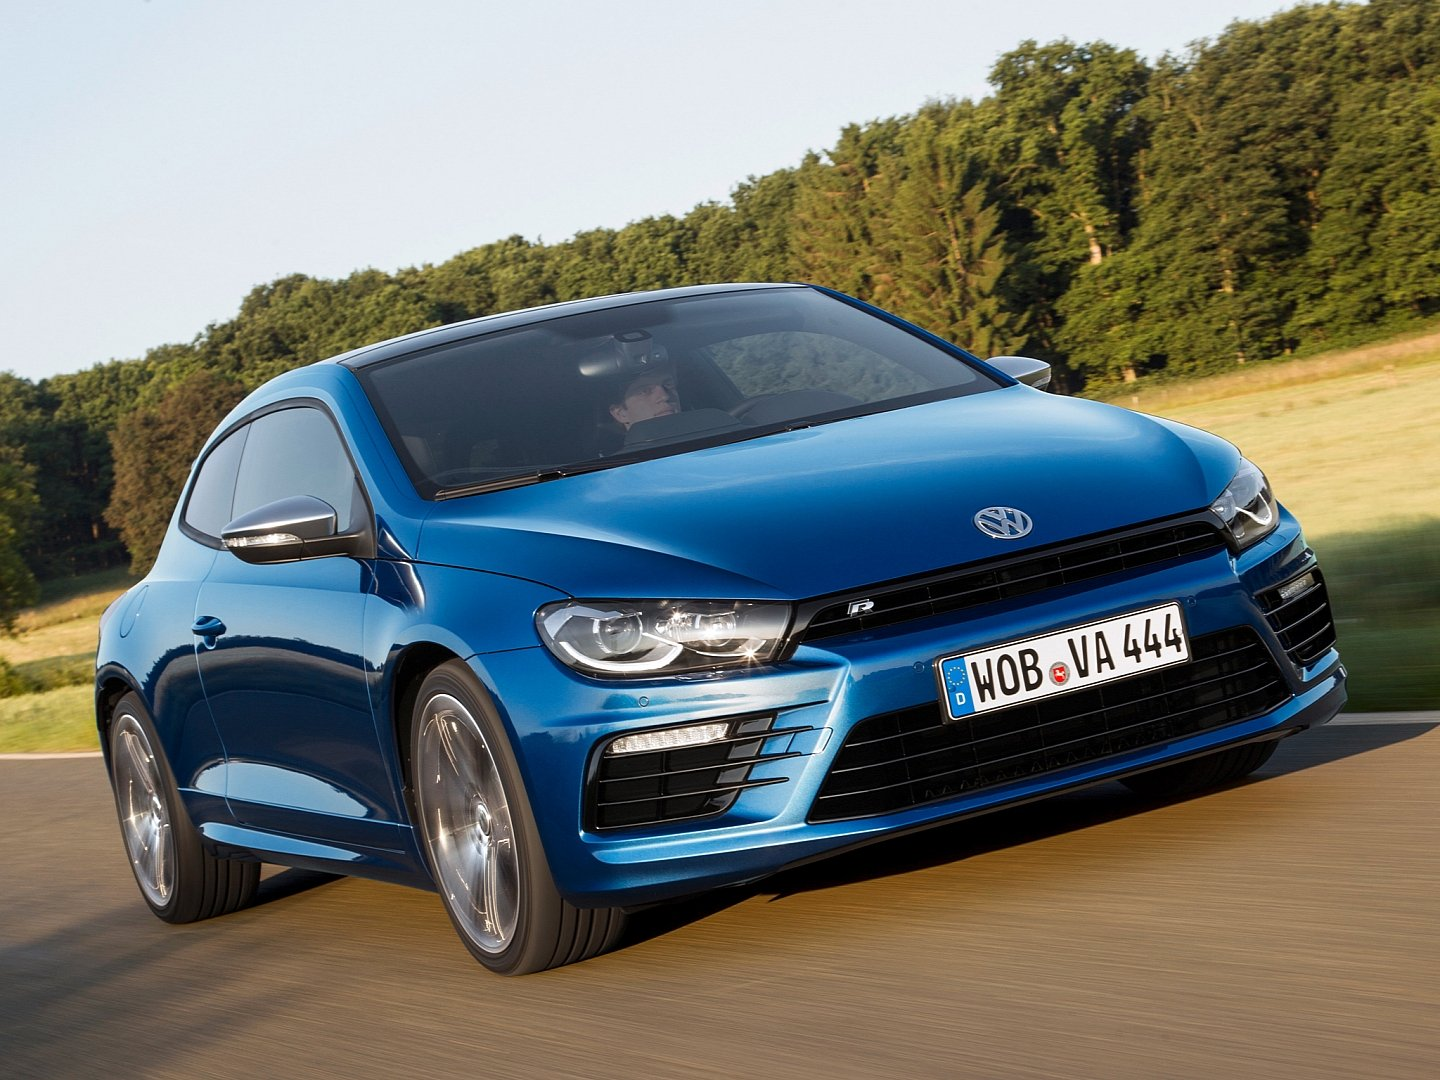 scirocco-radditional-20-ps-accelerates-06-seconds-faster-to-100-km-h-than-its-predecessor-1080p-5